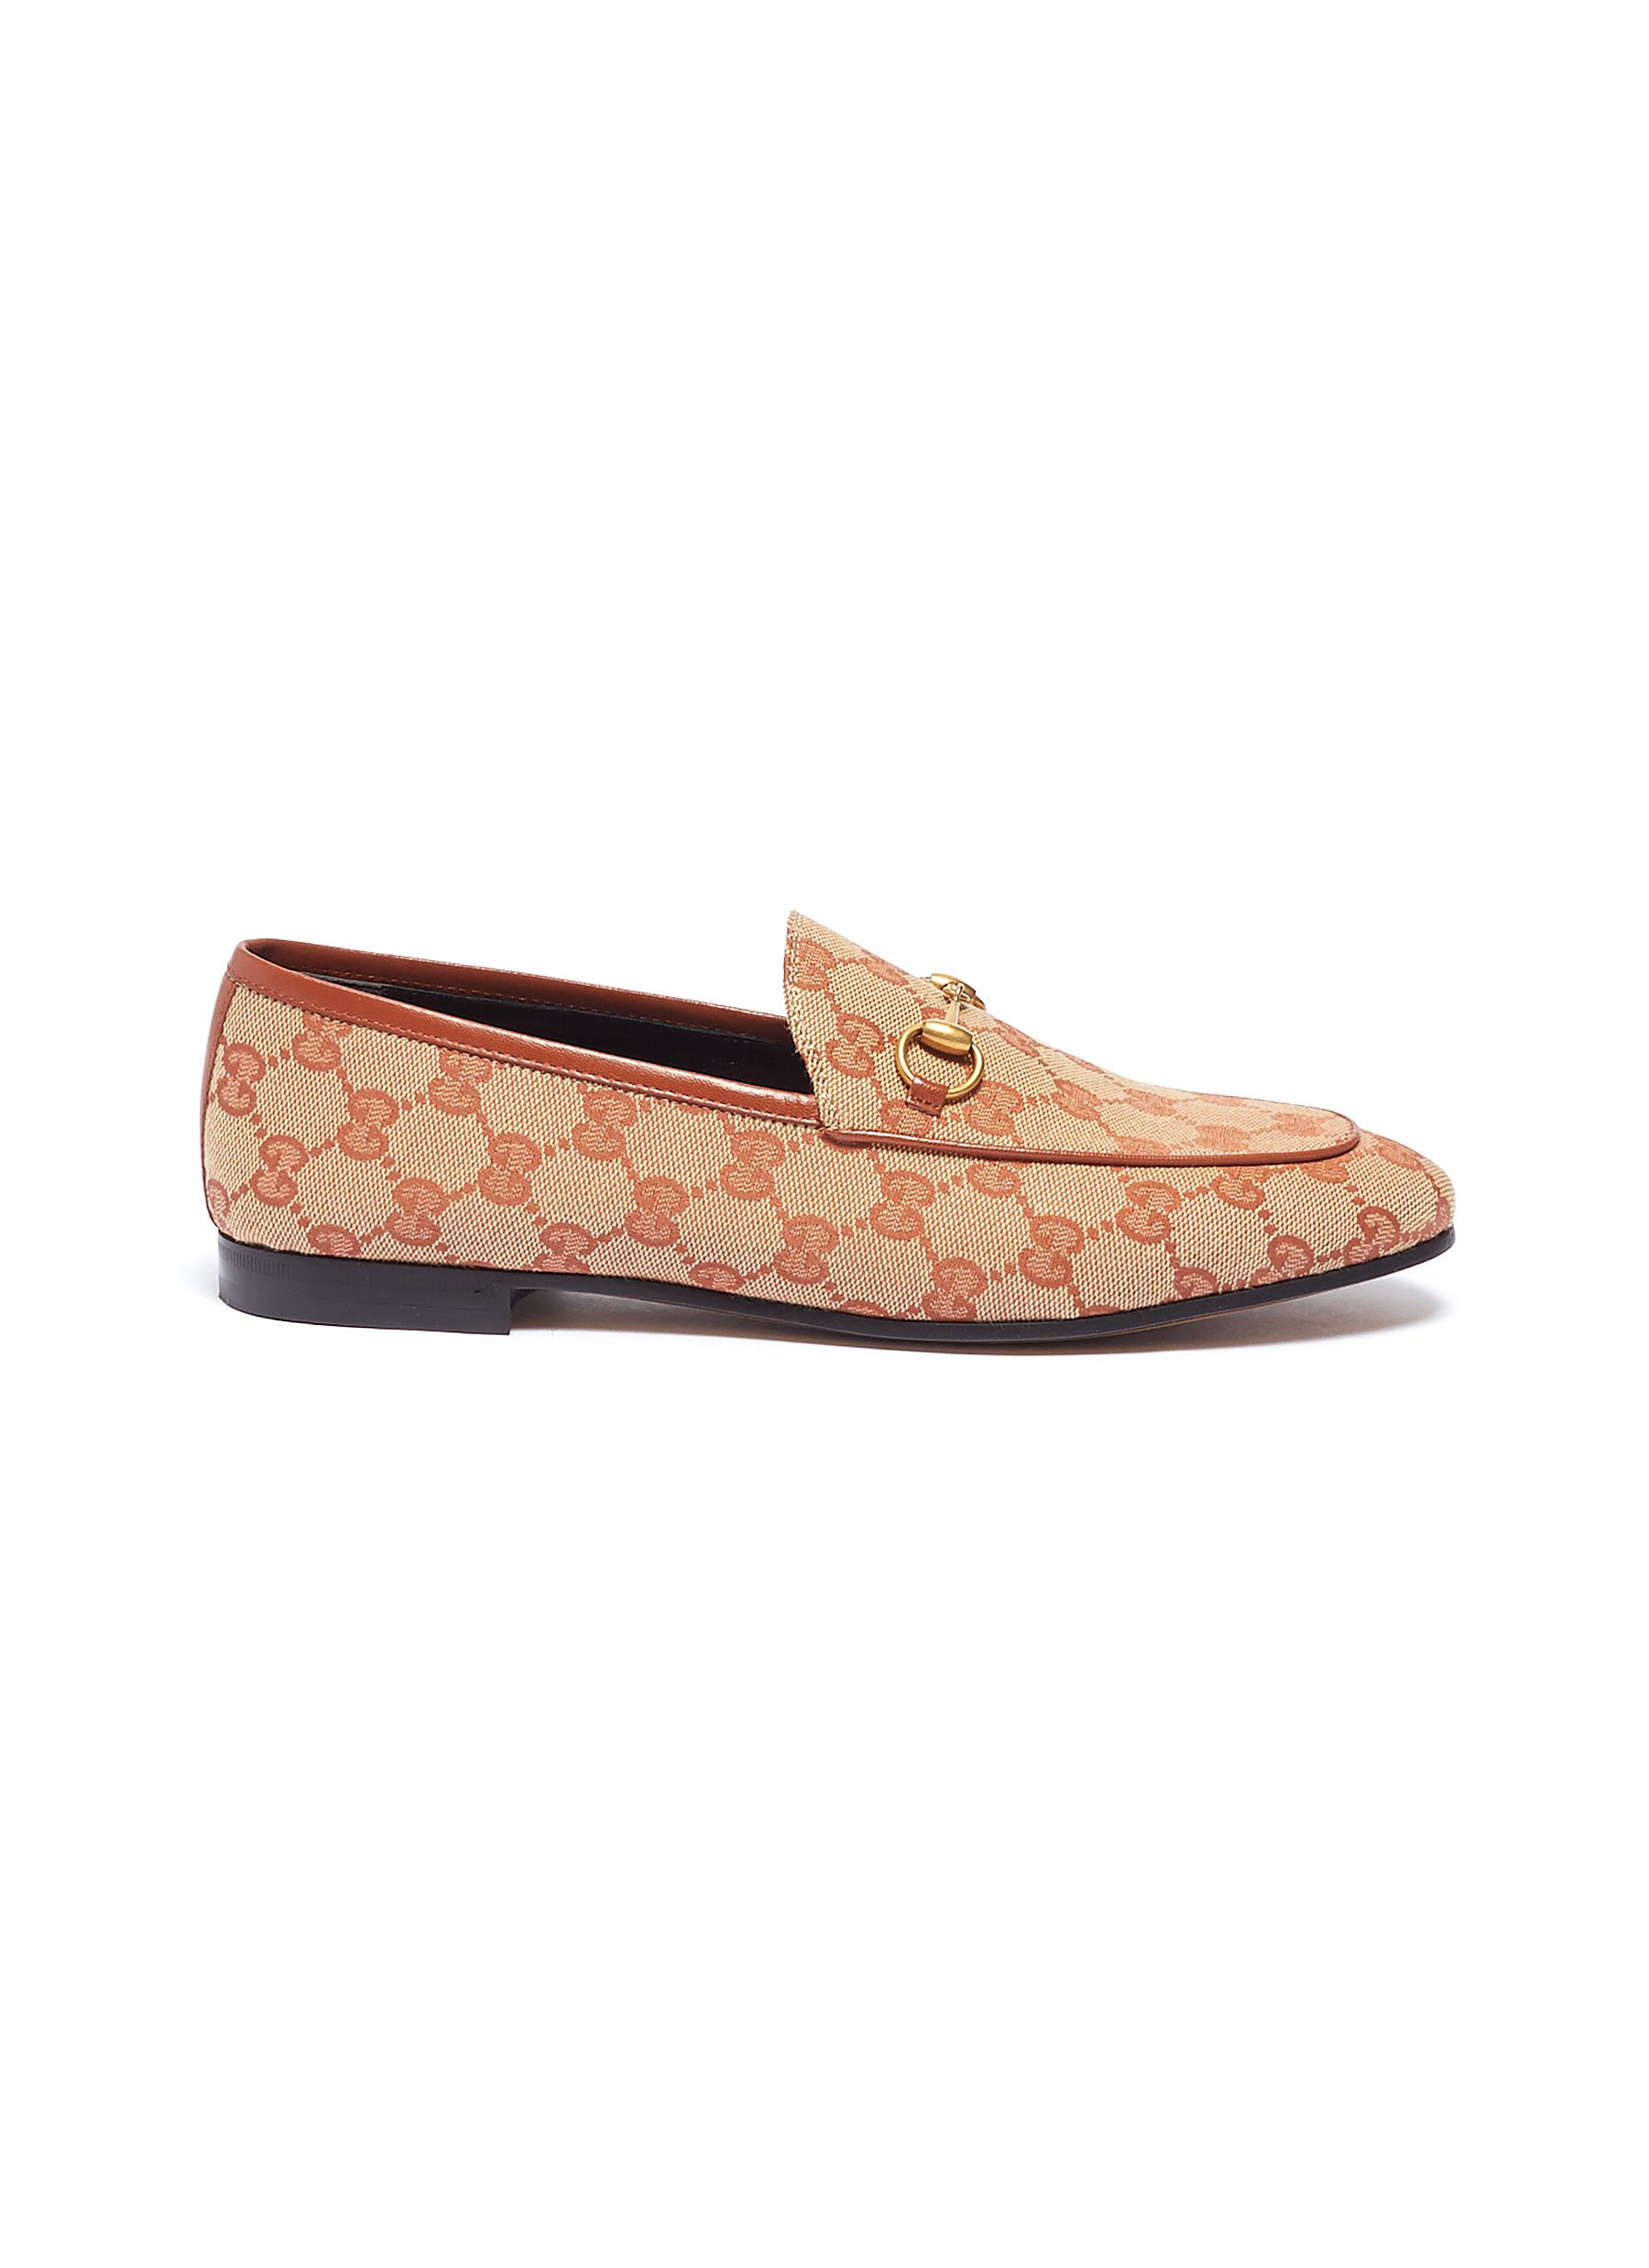 2a2a914d612 Gucci.  Jordaan  GG embroidered canvas horsebit loafers